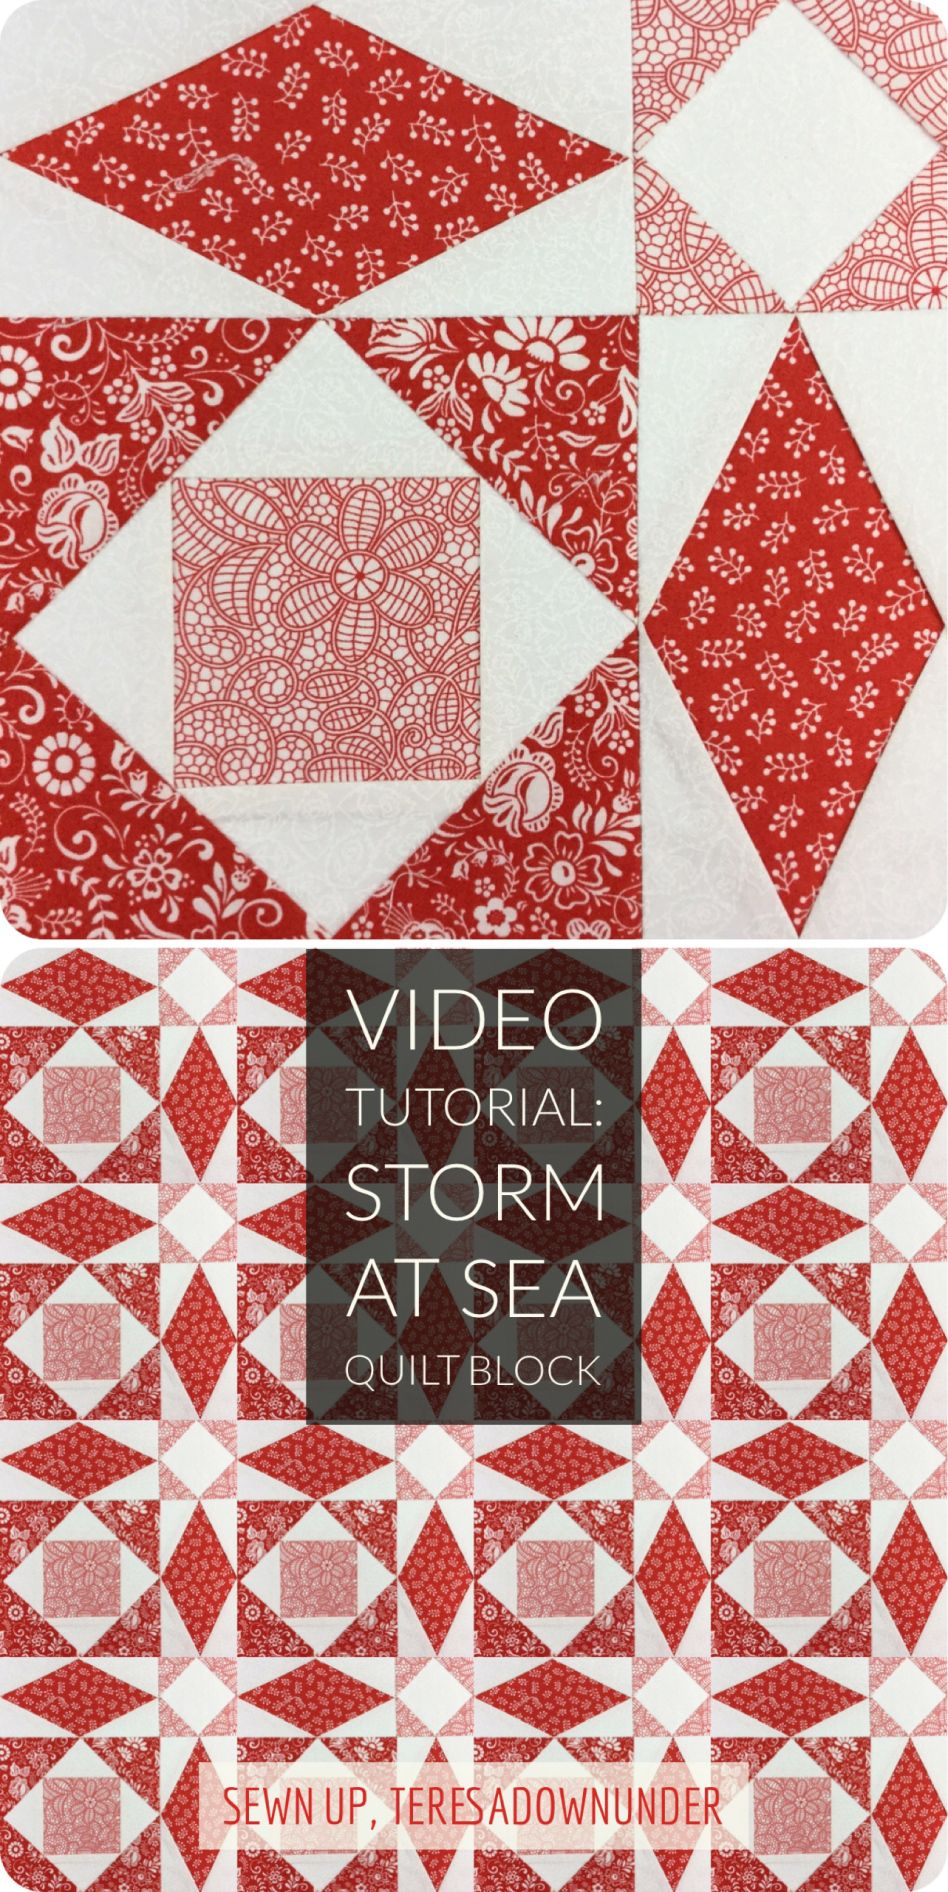 Video tutorial: Storm at sea quilt block – version 1 | Quilt ...